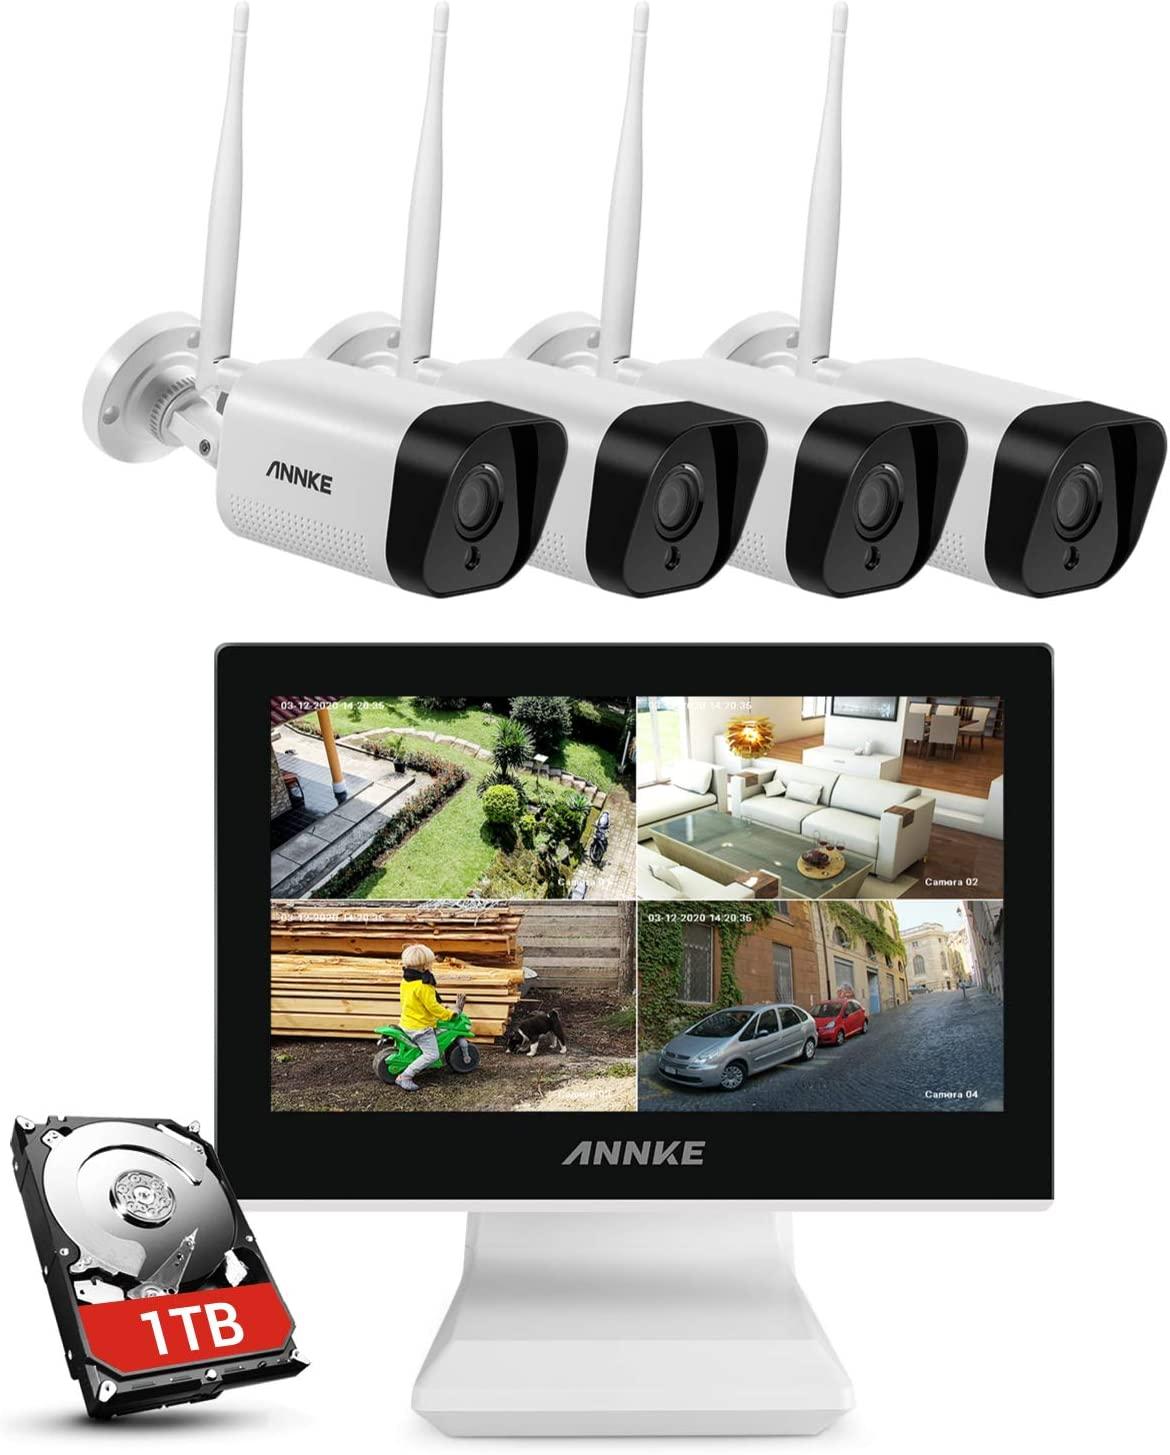 ANNKE WL400 5MP NVR with 10.1